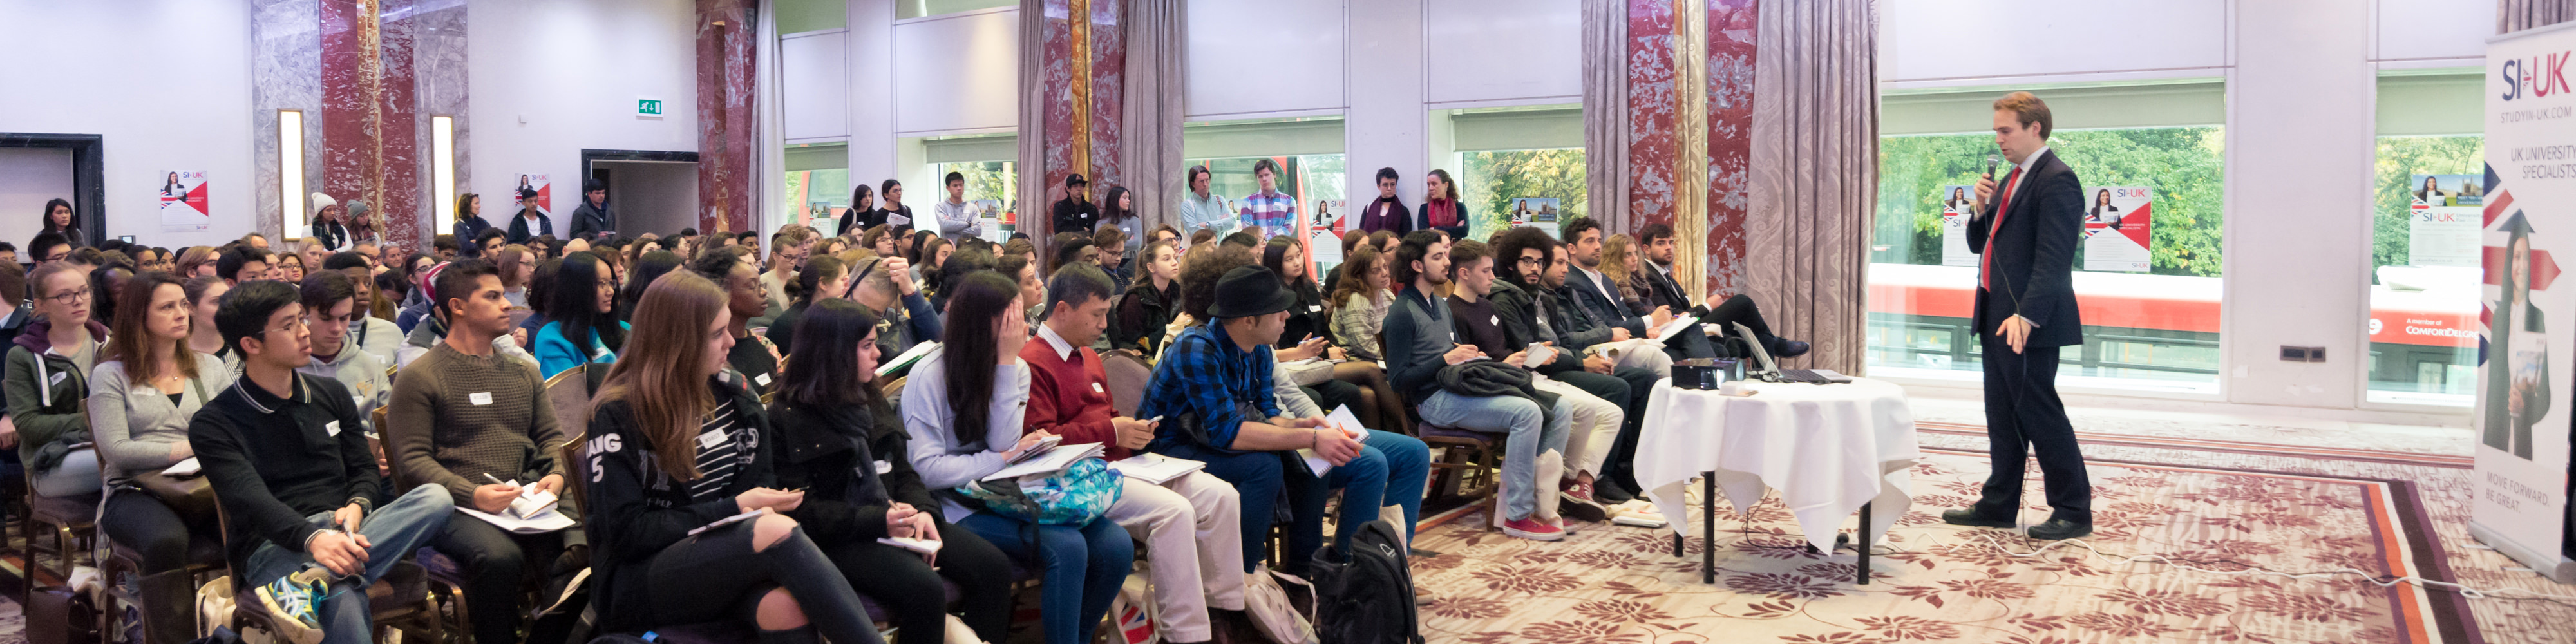 UK University Fair Seminars | UK University Fair London, February 2019